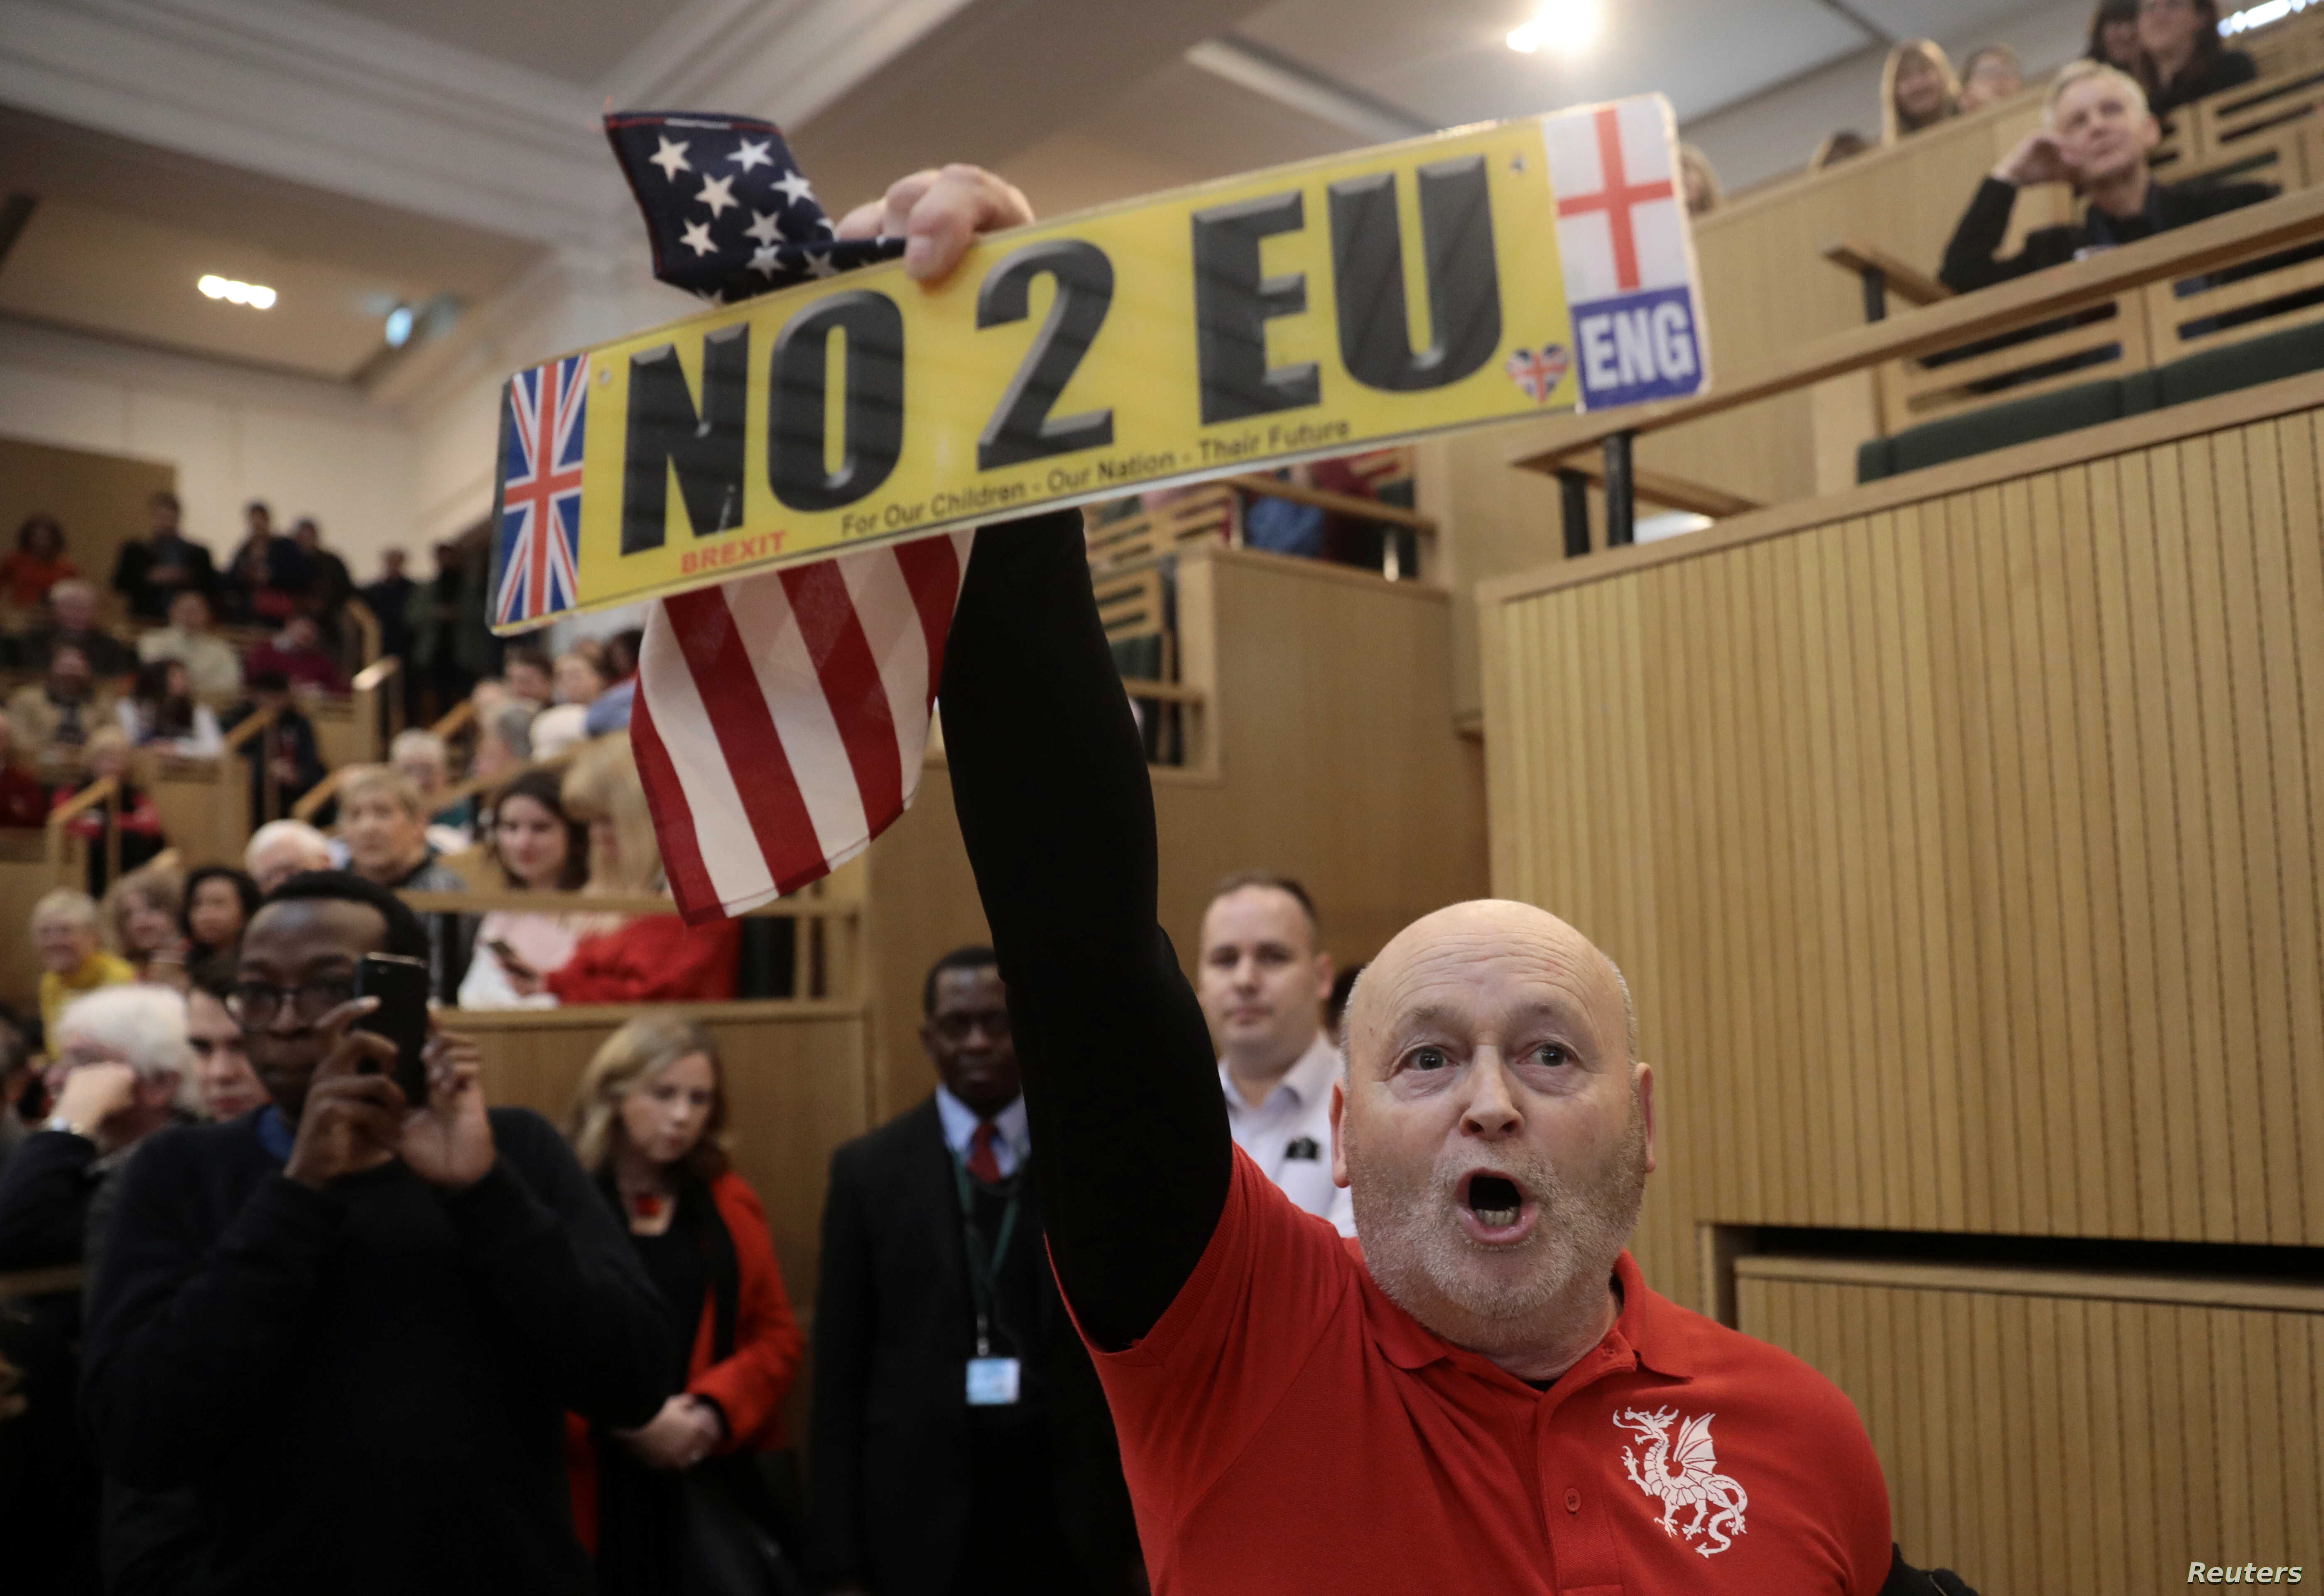 A demonstrator holds a pro-Brexit sign and a U.S. flag, as the speech by the Mayor of London, Sadiq Khan, is interrupted at the Fabian Society New Year Conference, in central London, Britain Jan. 13, 2018.